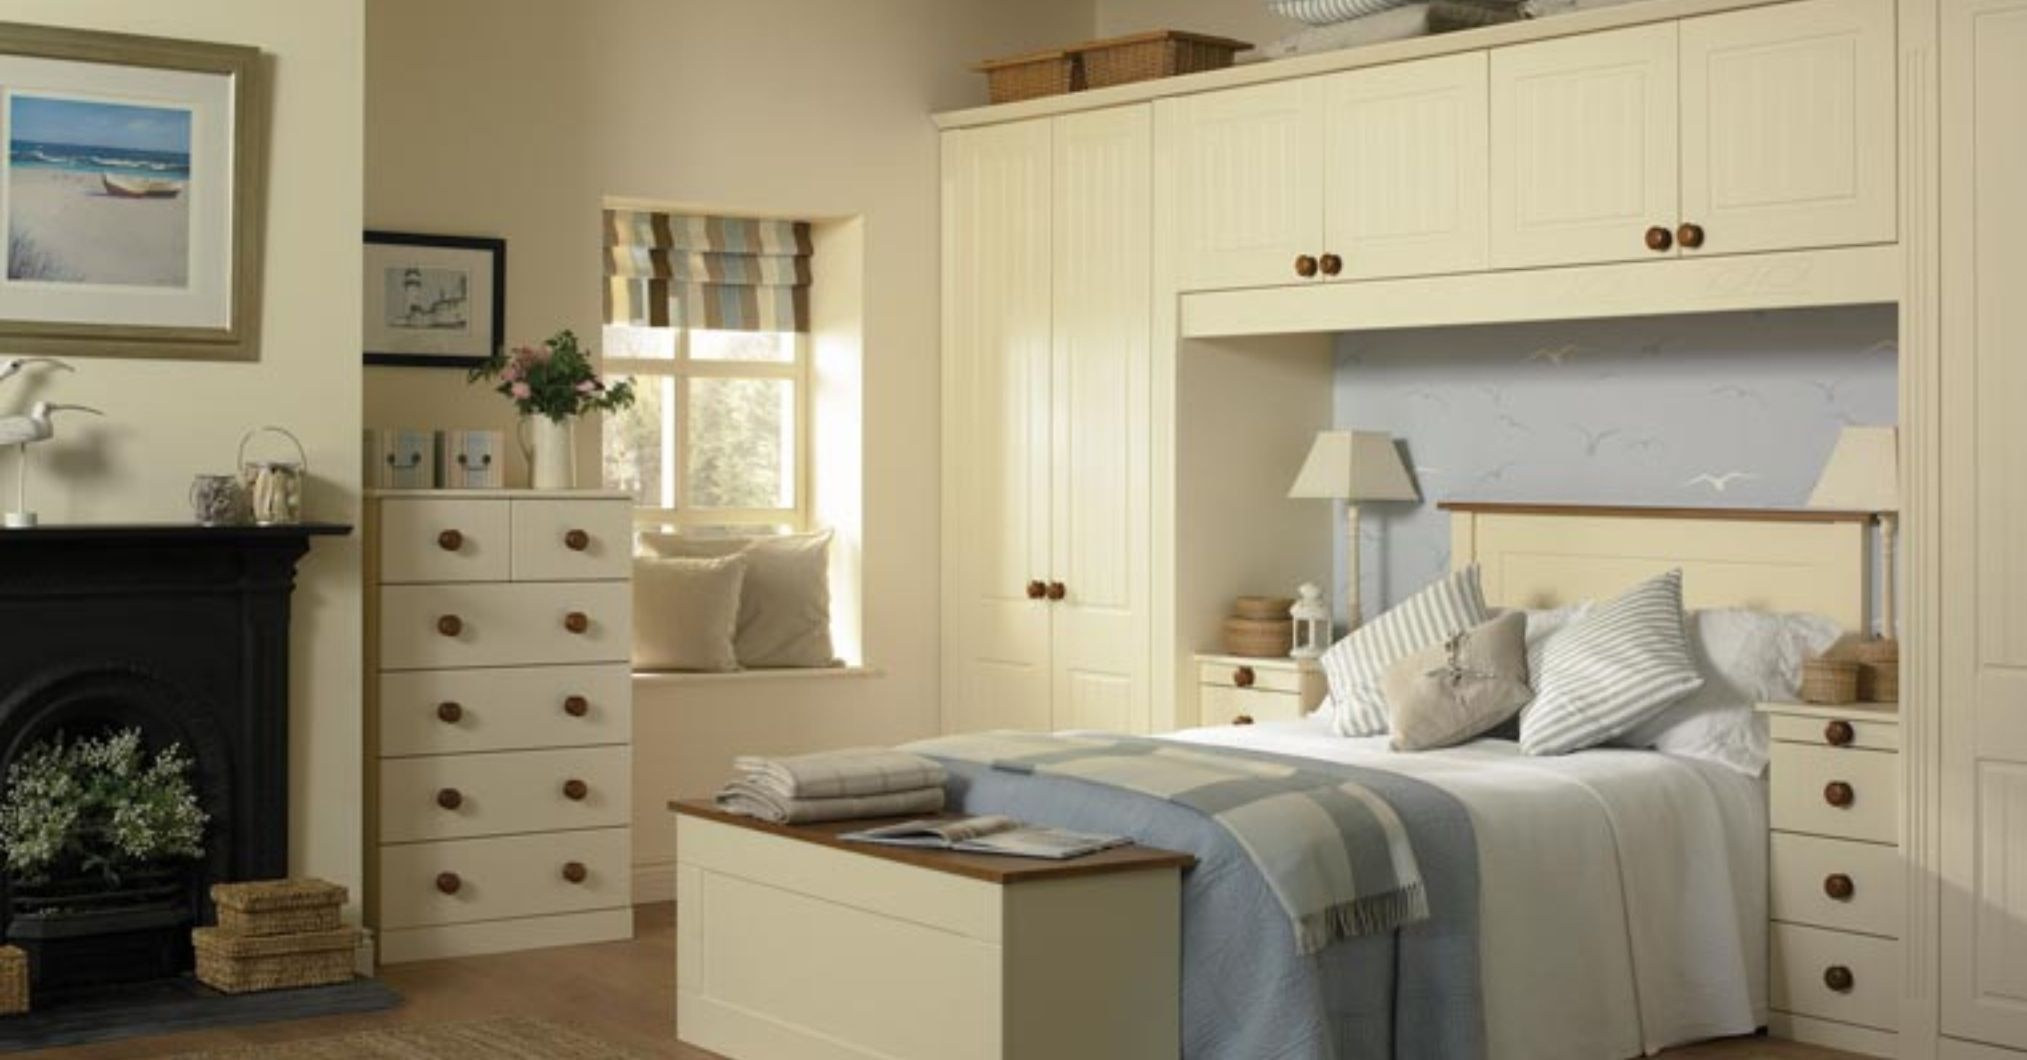 Around the bed storage- //.doors-sincerely.co & Around the bed storage- http://www.doors-sincerely.co.uk/Assets ...